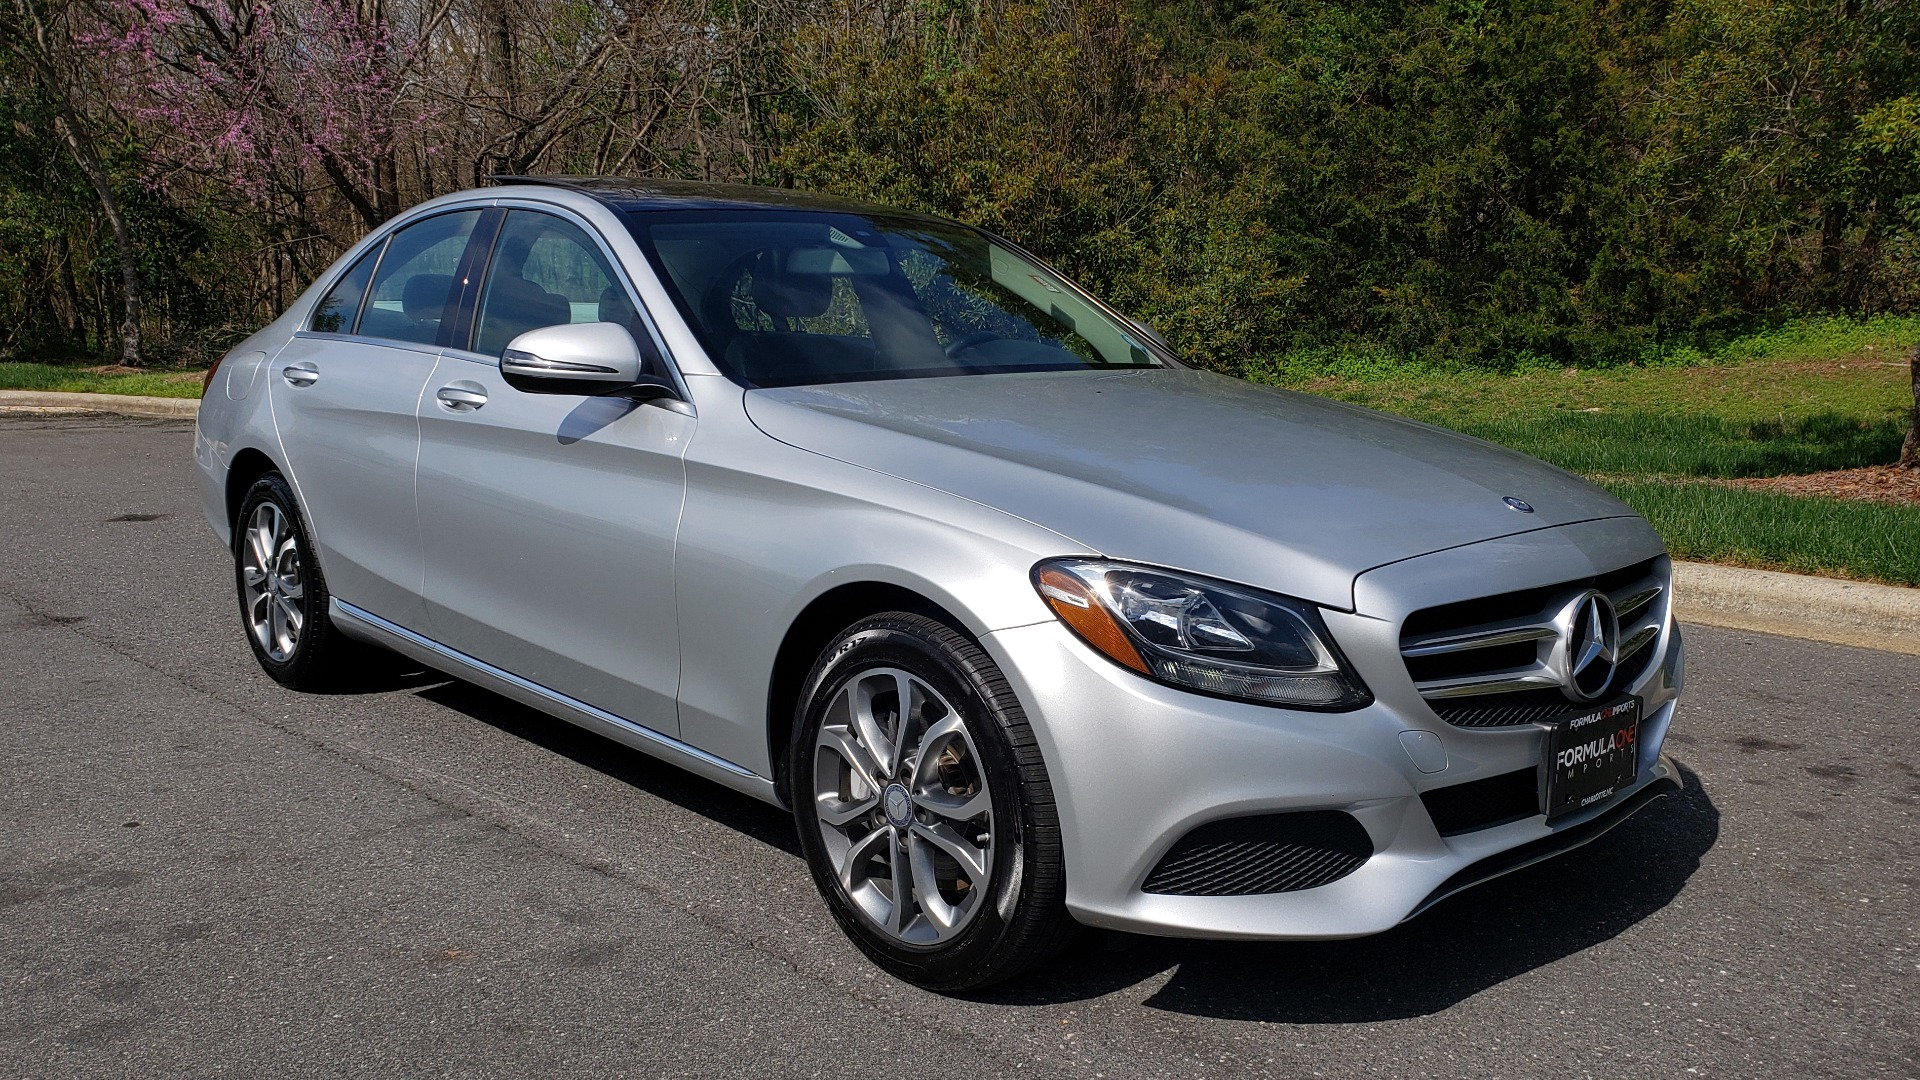 Used 2017 Mercedes-Benz C-CLASS C 300 4MATIC PREMIUM / NAV / PANO-ROOF / REARVIEW for sale Sold at Formula Imports in Charlotte NC 28227 4